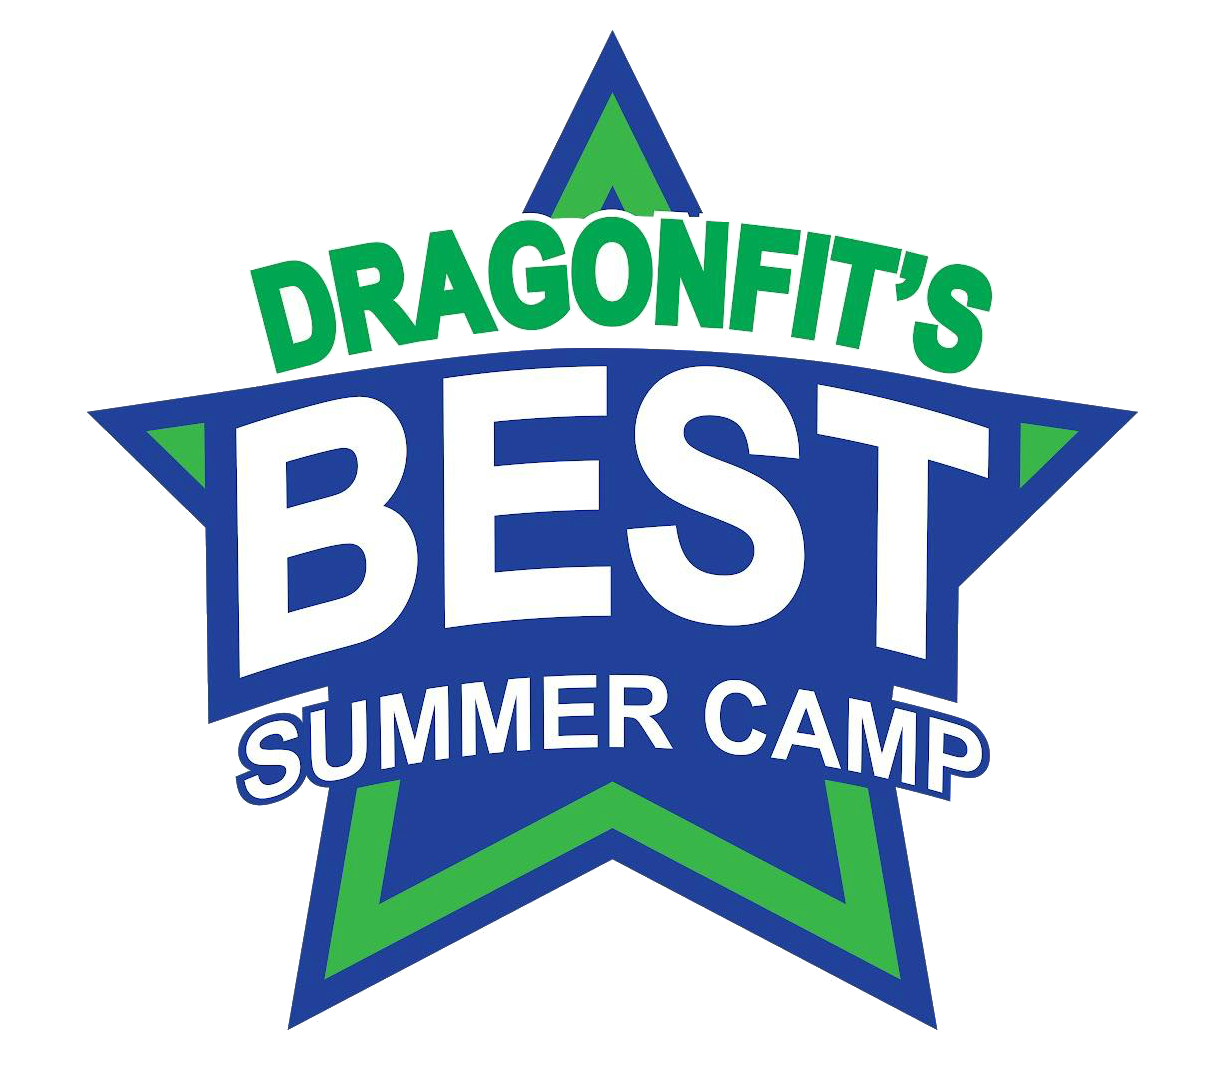 Dragonfits Best Summer Camp